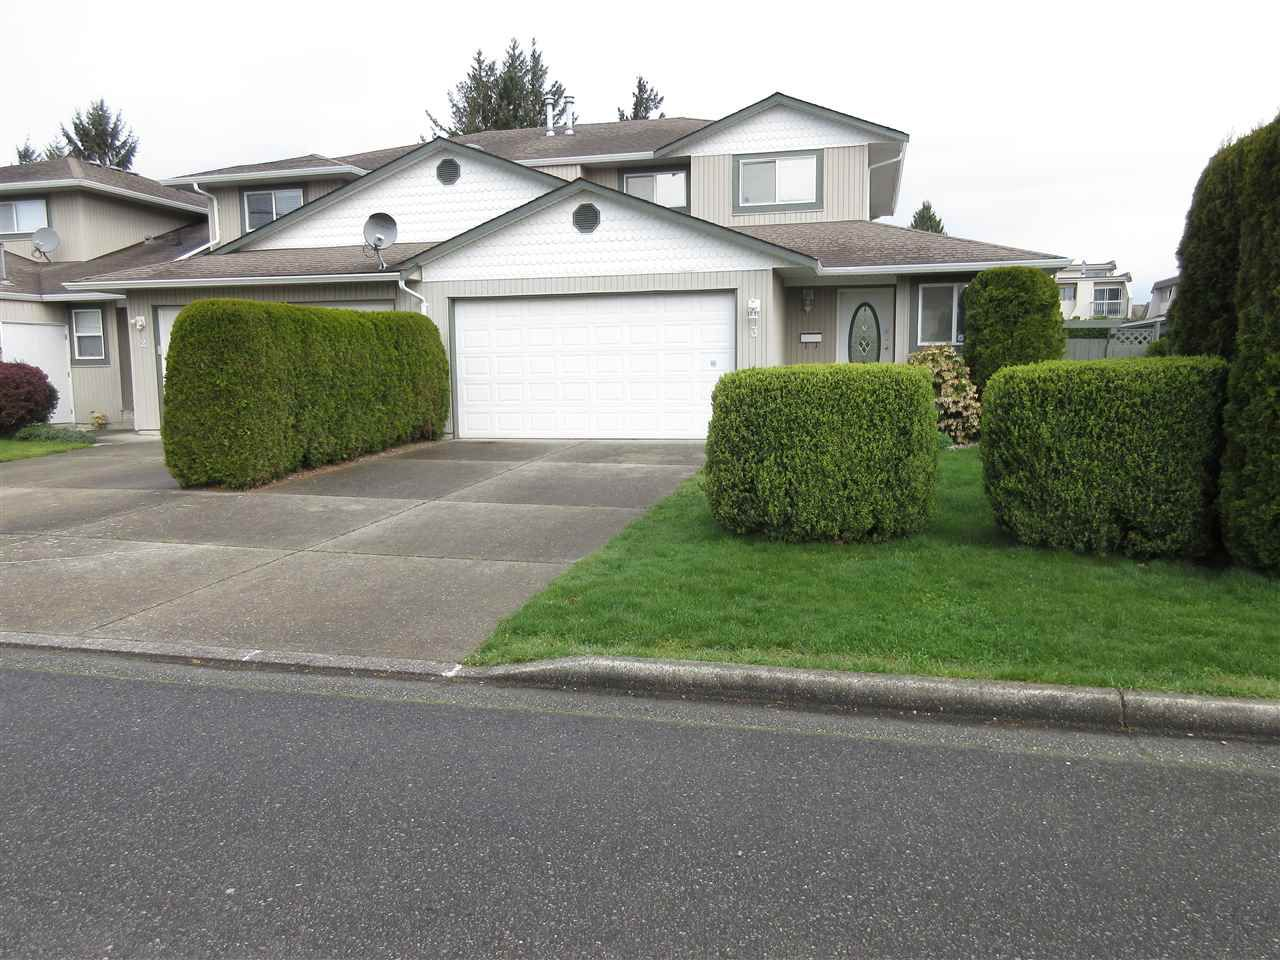 Main Photo: 3 9408 HAZEL Street in Chilliwack: Chilliwack E Young-Yale Townhouse for sale : MLS®# R2055068